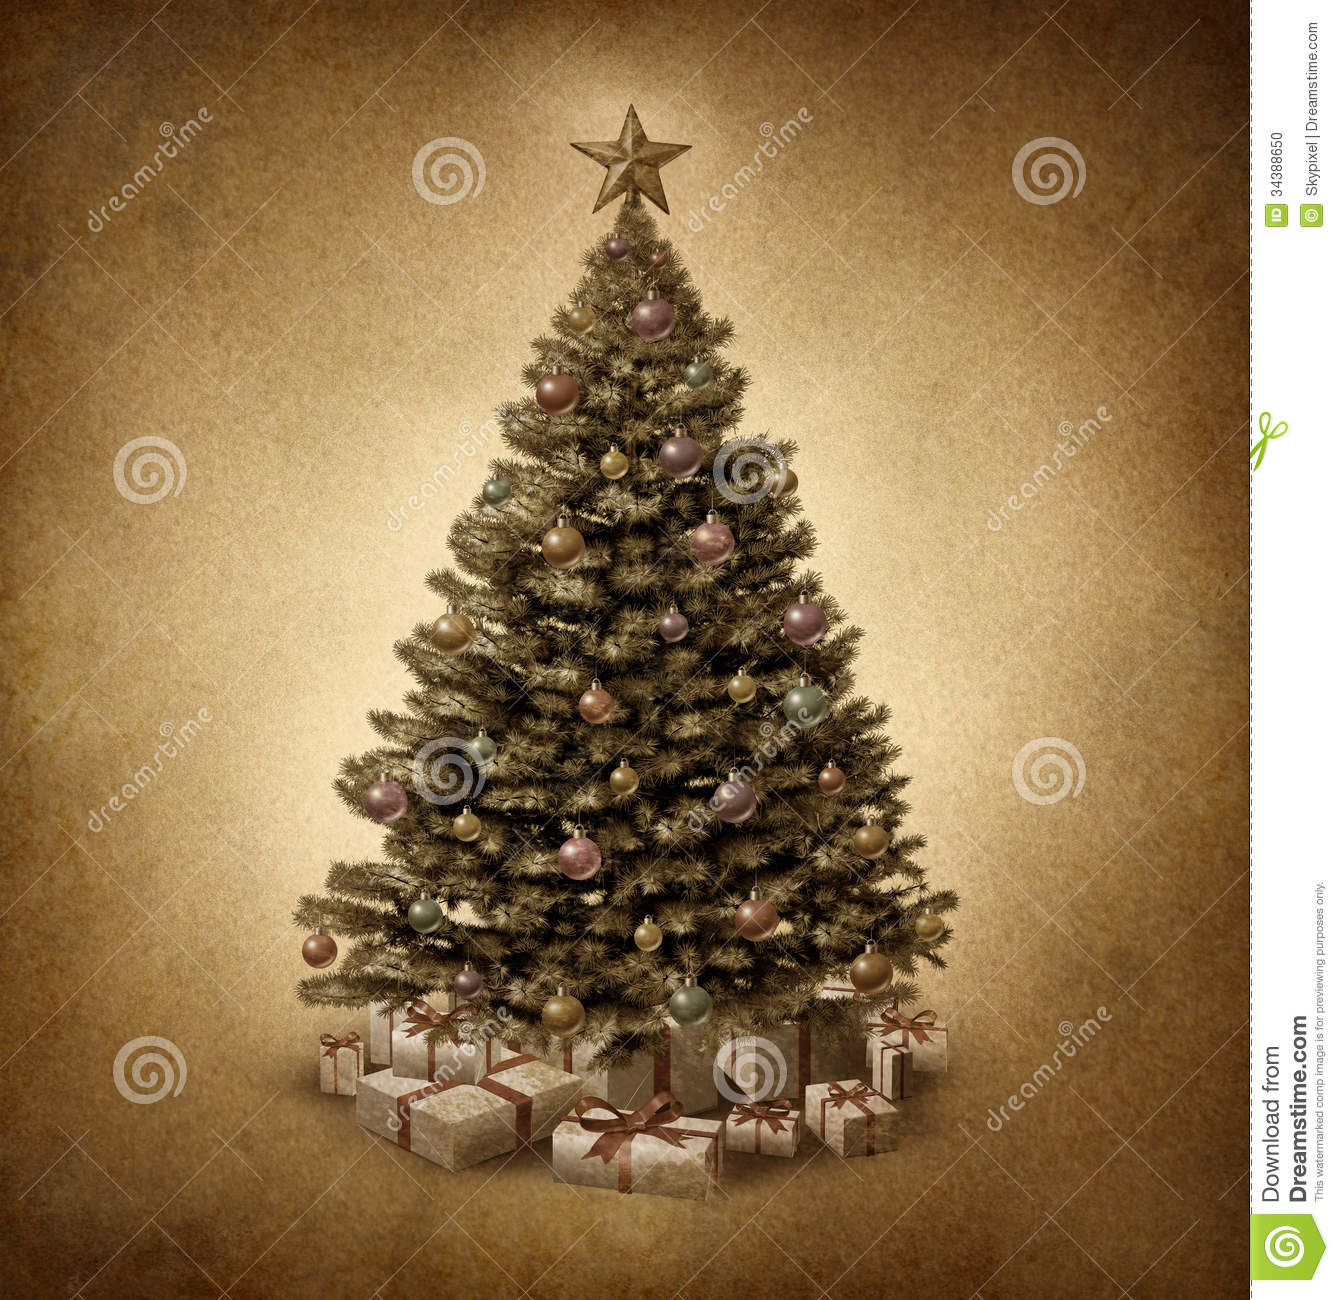 Old Fashioned Christmas Tree Stock Illustration - Illustration of ...